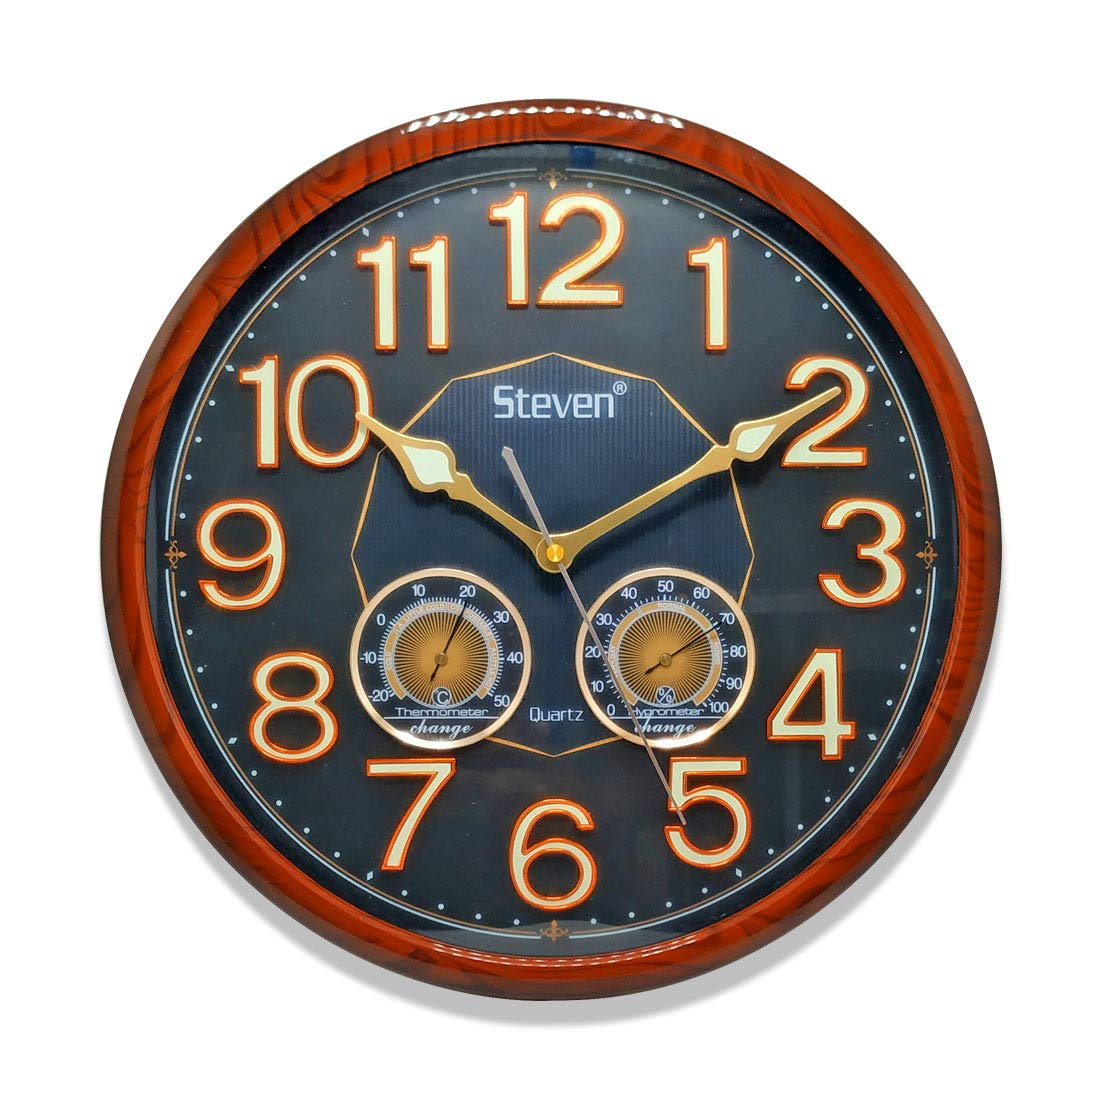 KITCHINDRA Steven Quartz Vintage Design Plastic Wall Clock